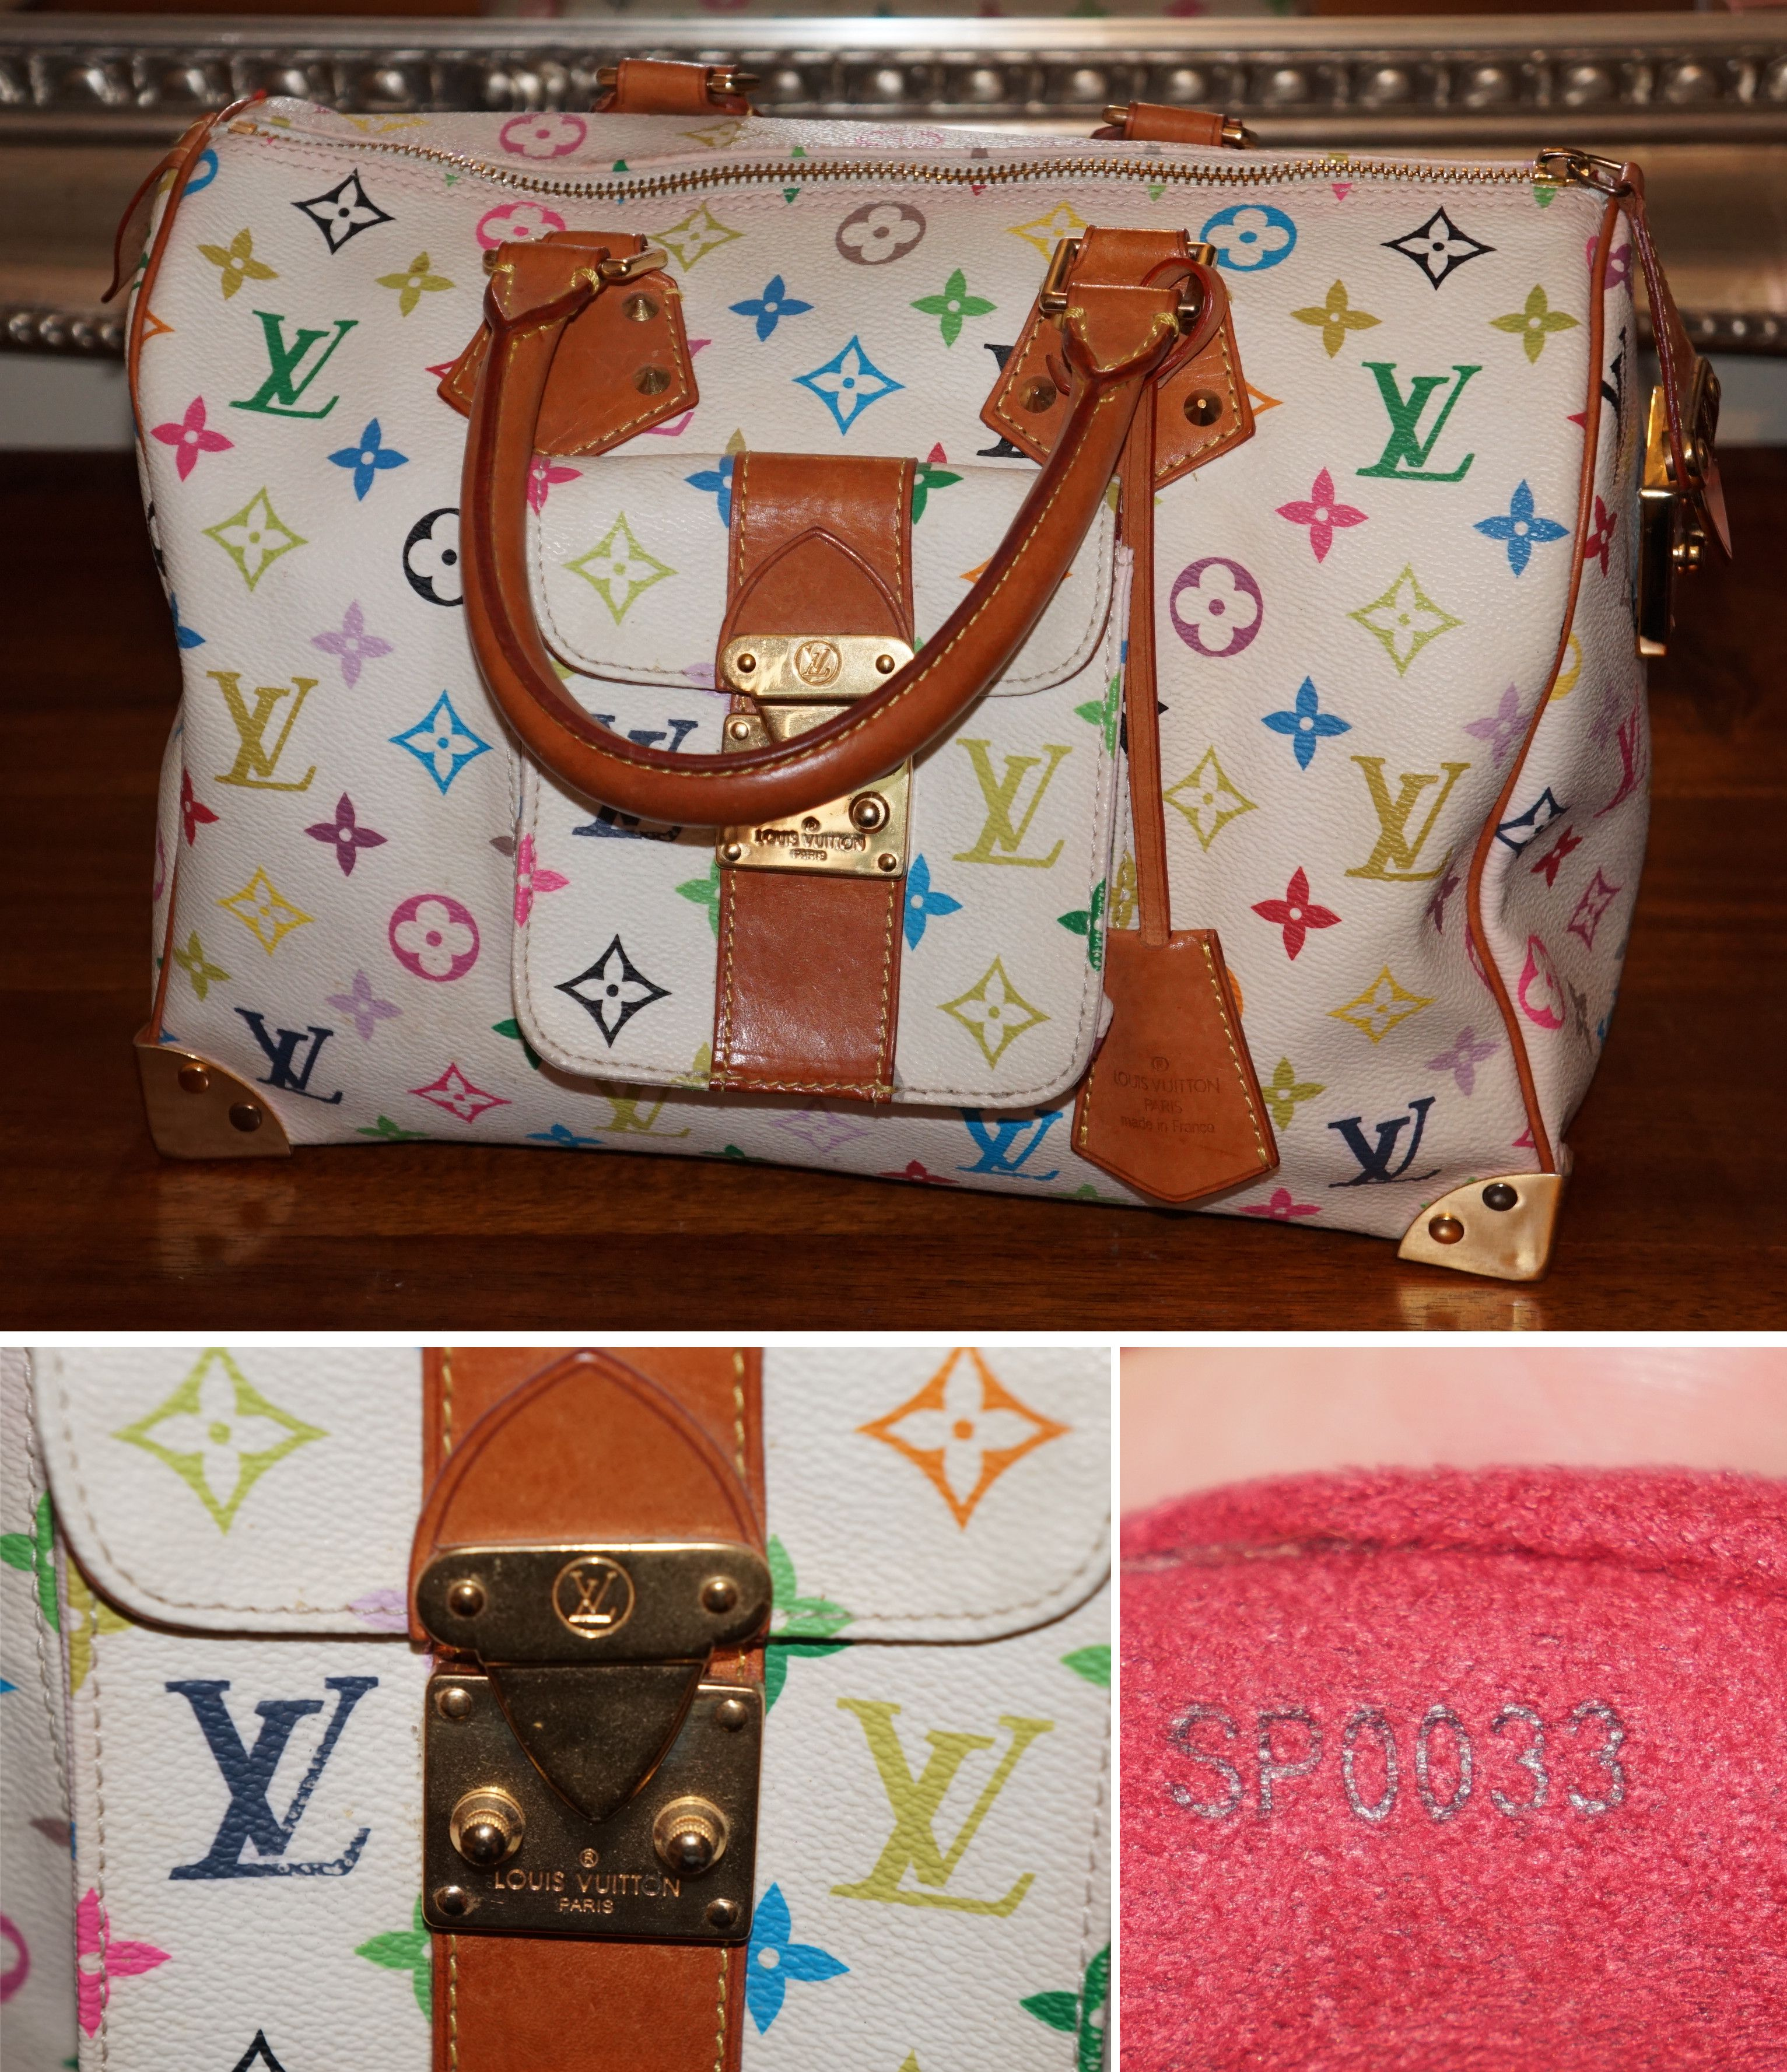 3041f7cc86a7 Commonly Faked Designer Goods: Louis Vuitton White Multicolor Speedy bag  Here are some of the most commonly counterfeited designer brands out there.  Can you ...